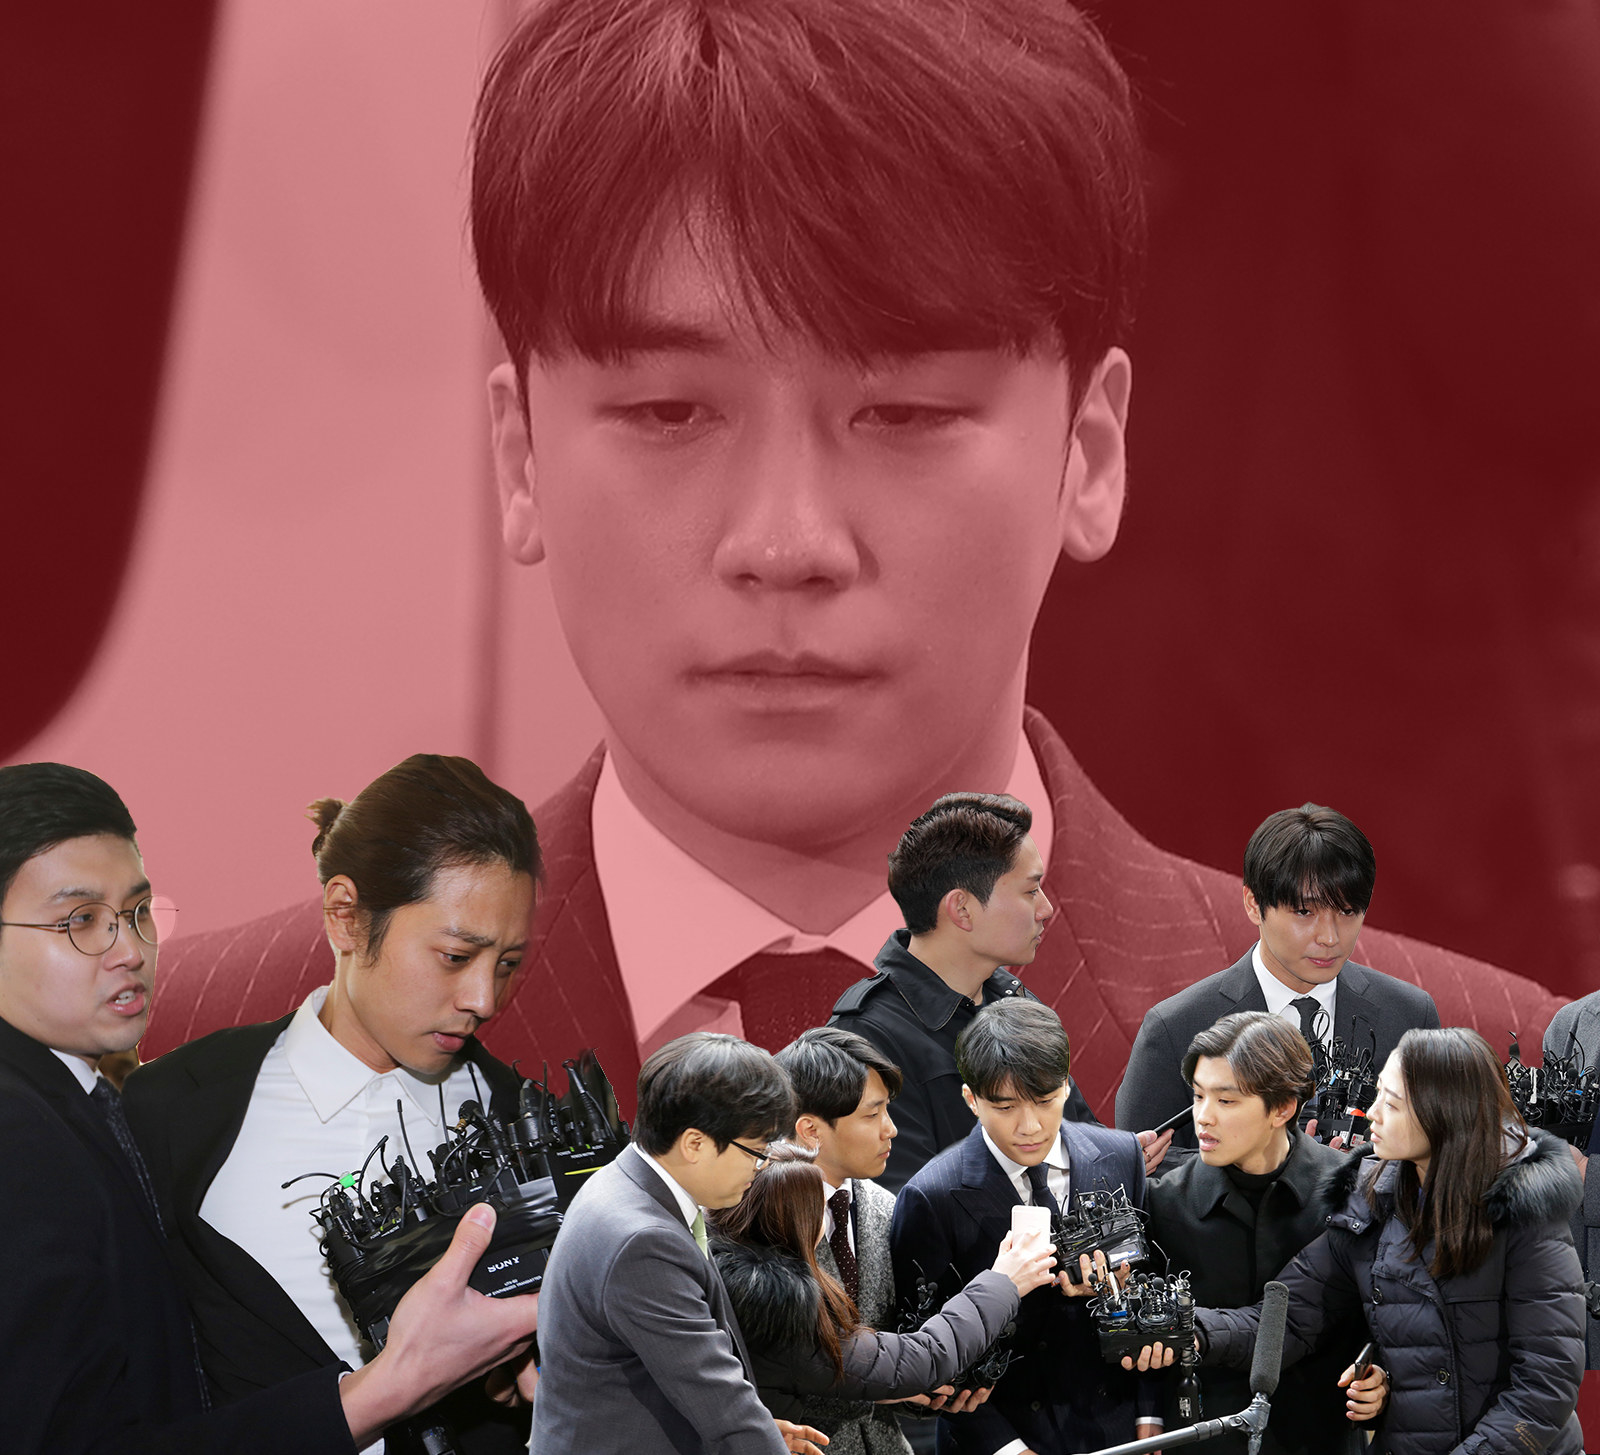 Seungri From Big Bang Has Started A New South Korean #MeToo Wave